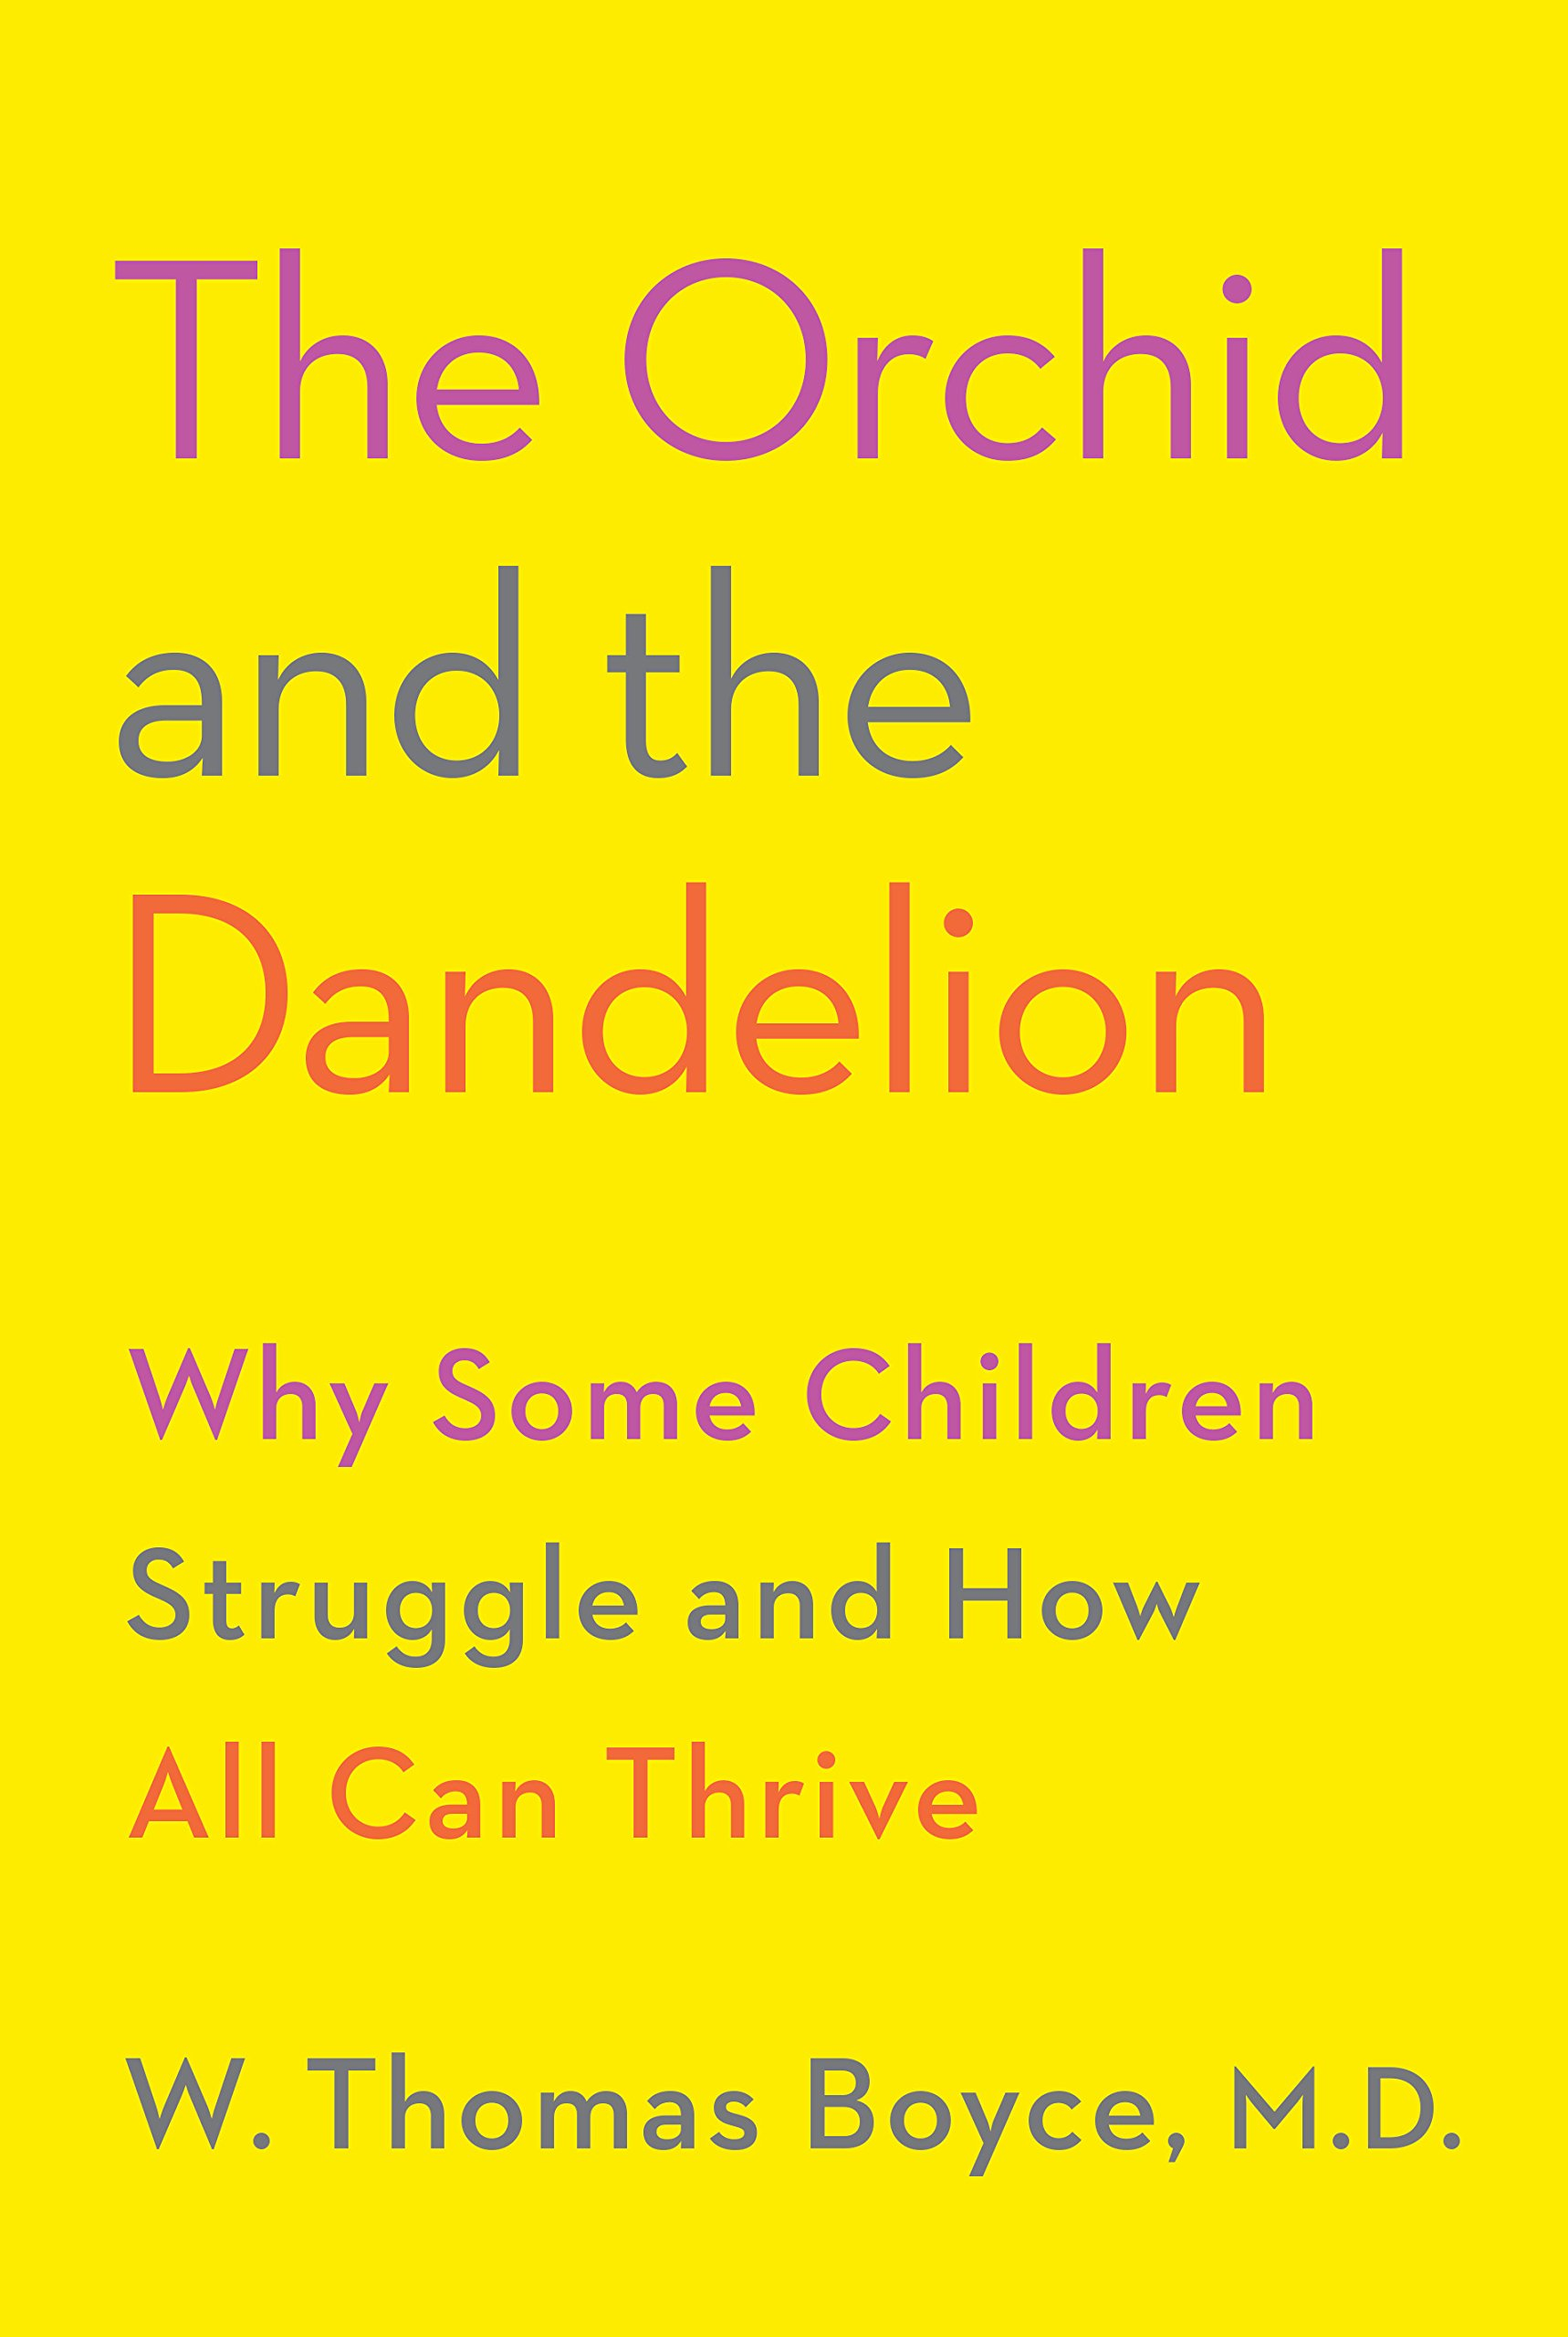 """Book cover of """"The Orchid and Dandelion"""" by W.Thomas Boyce, M.D."""